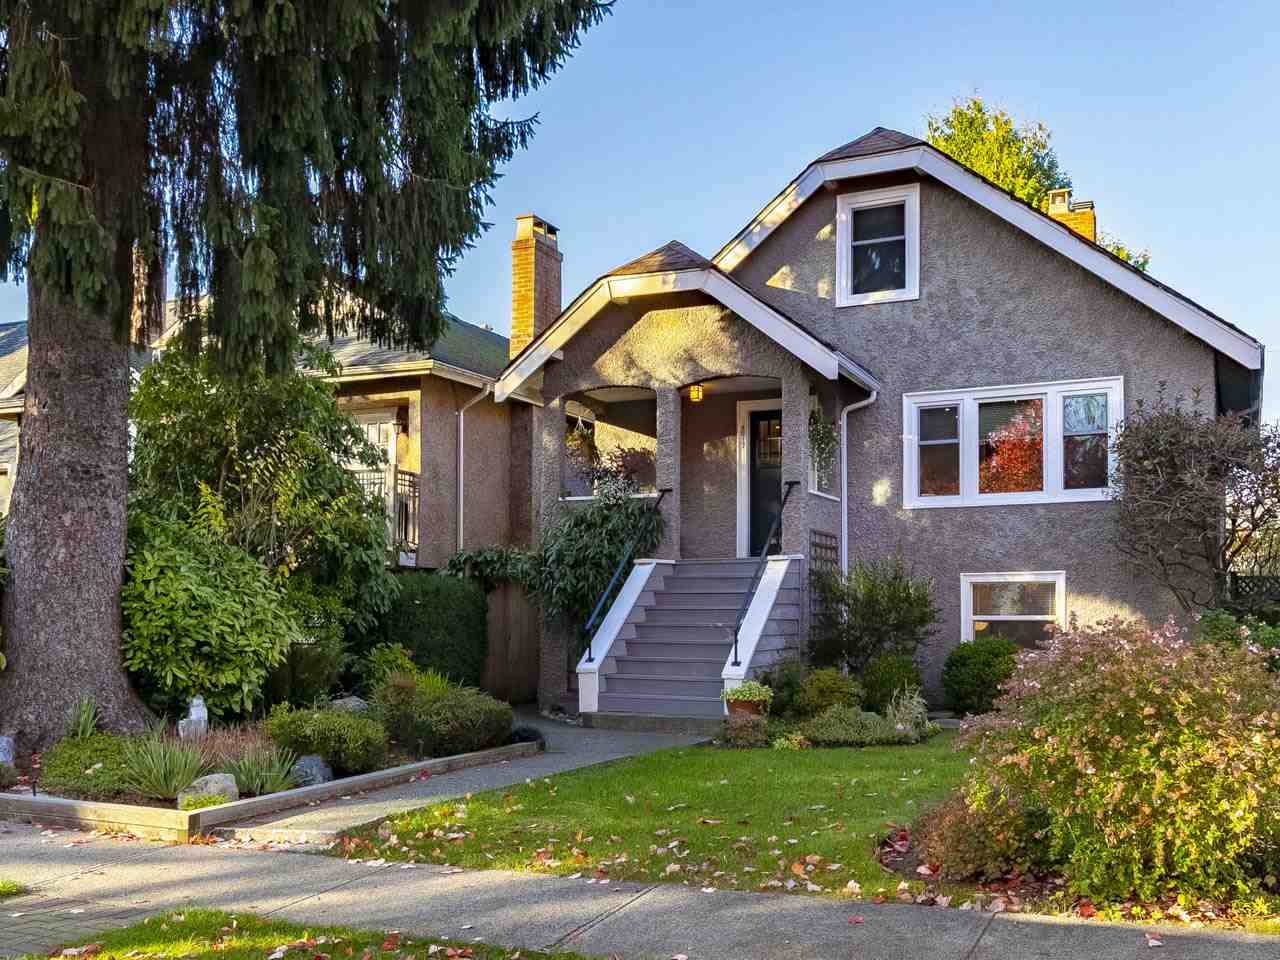 Sold: 4517 West 14th Avenue, Vancouver, BC